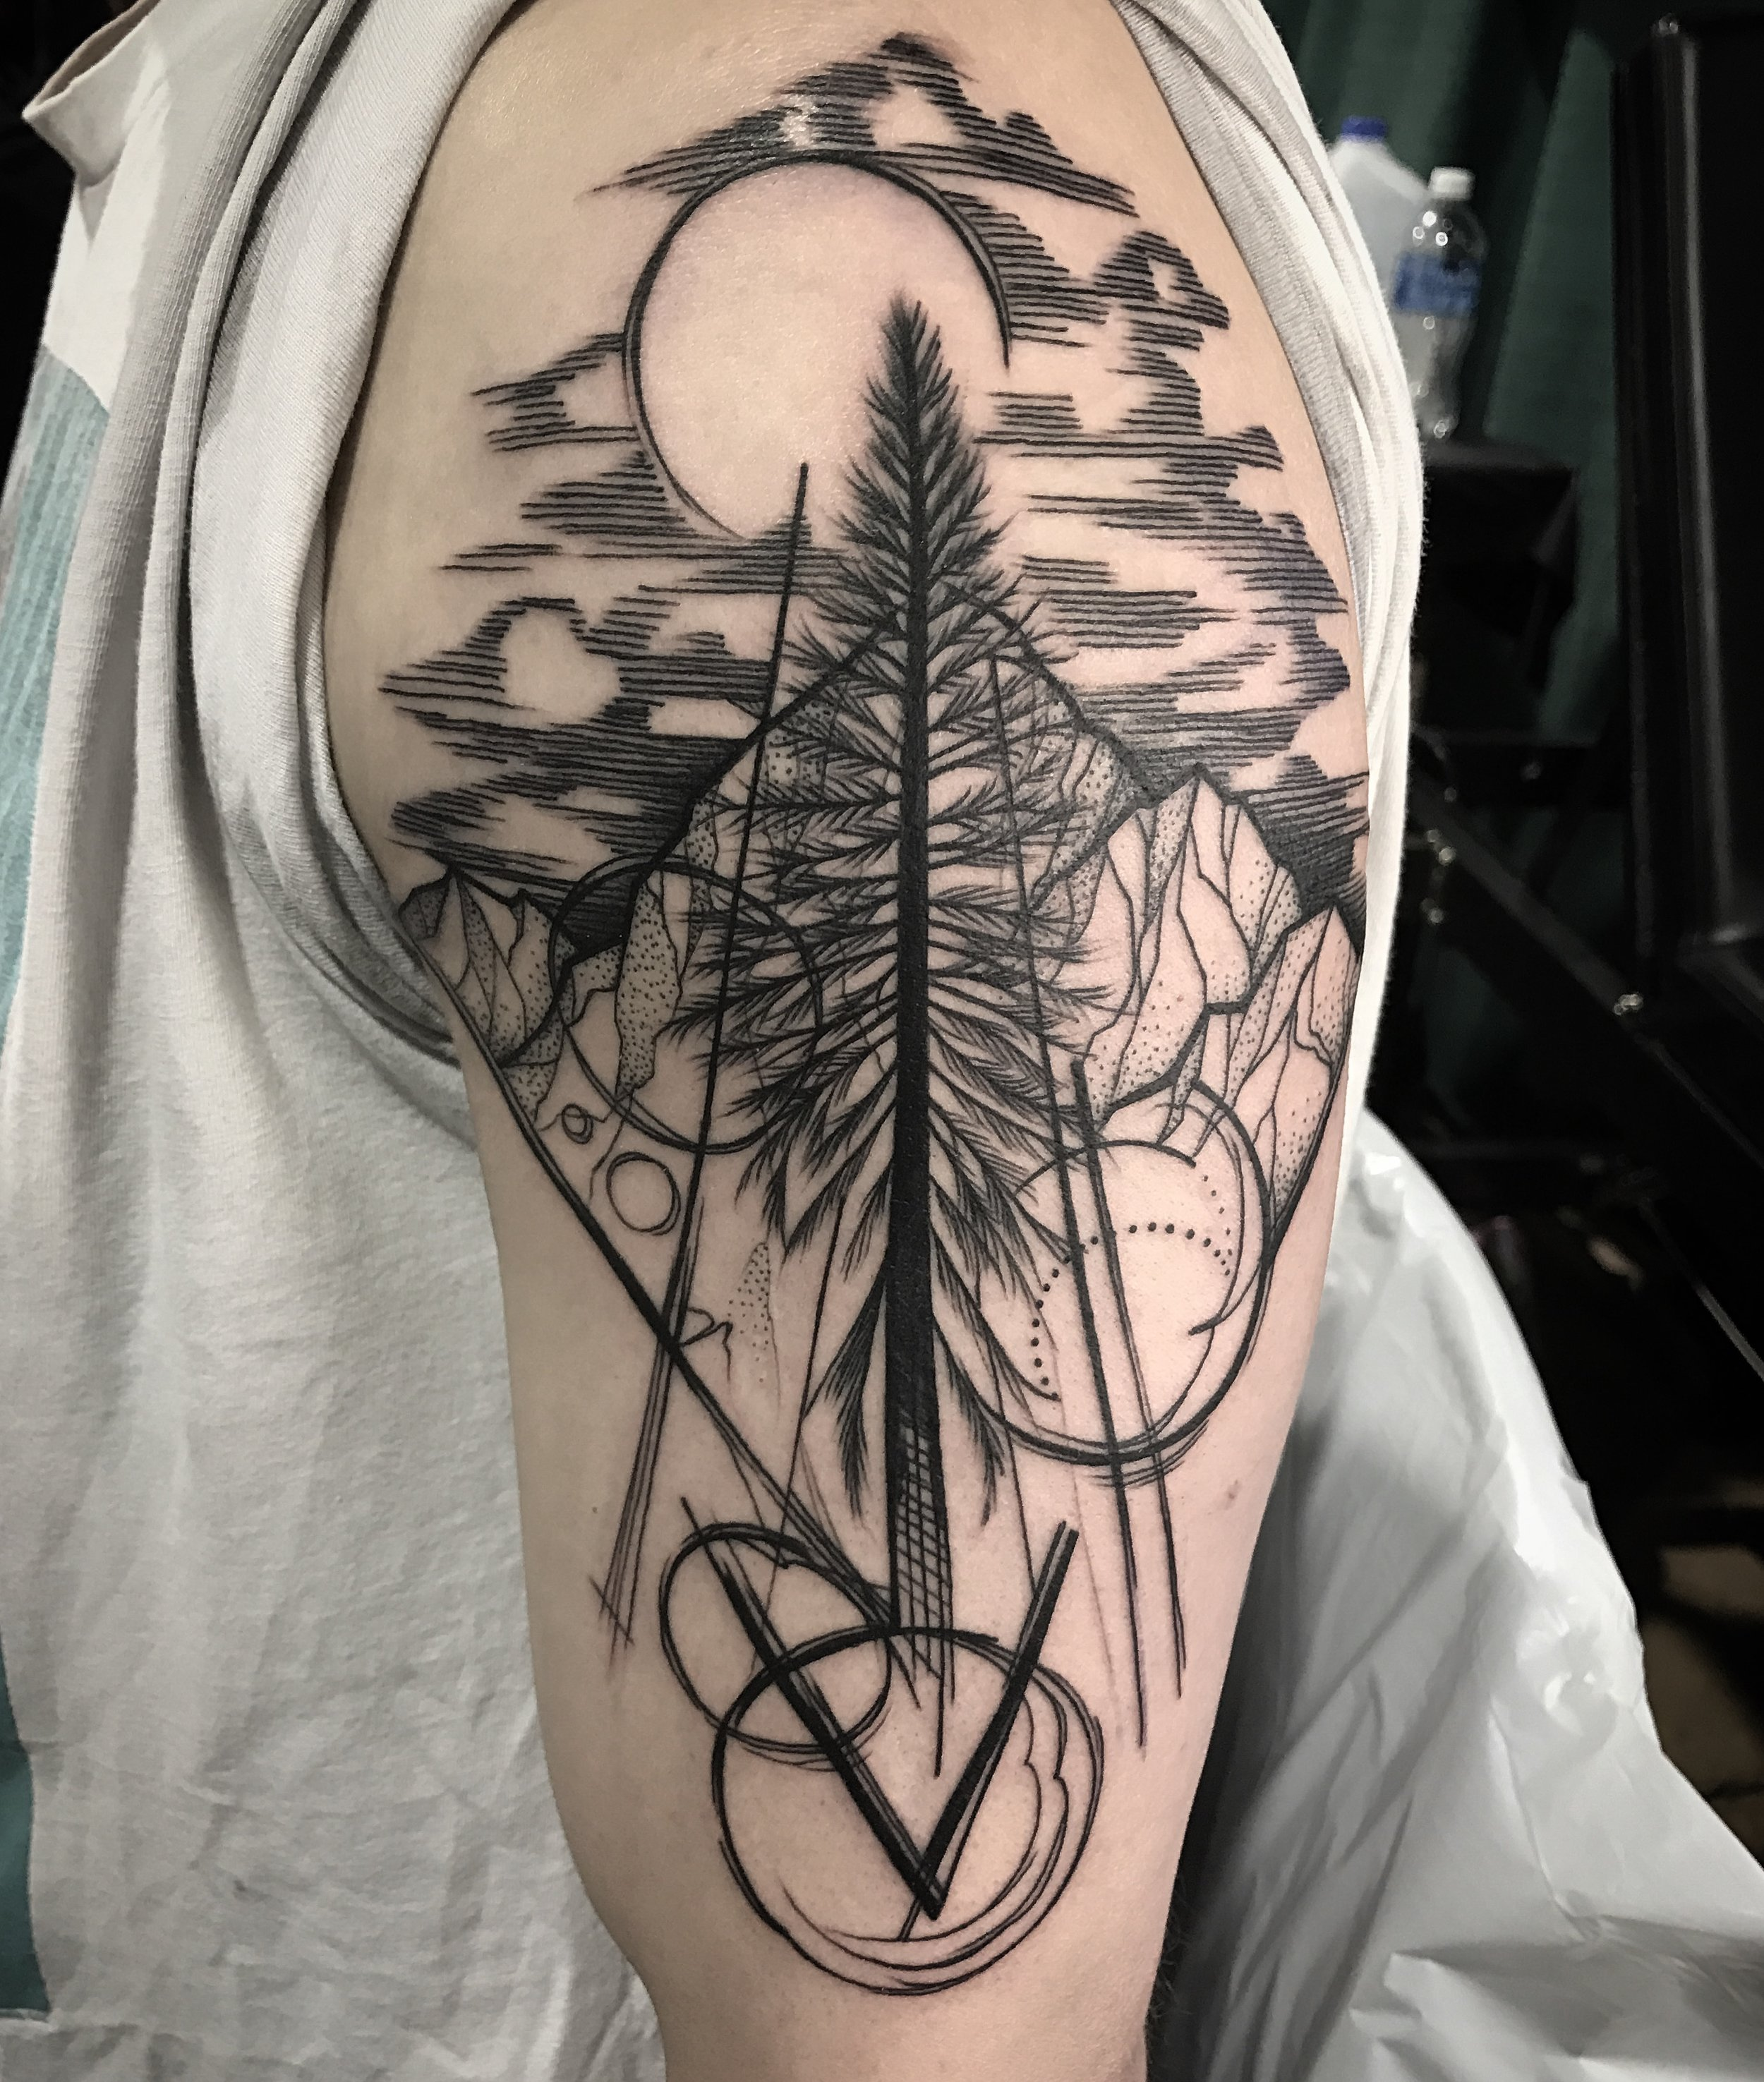 Blackwork Landscape Tattoo by David Mushaney